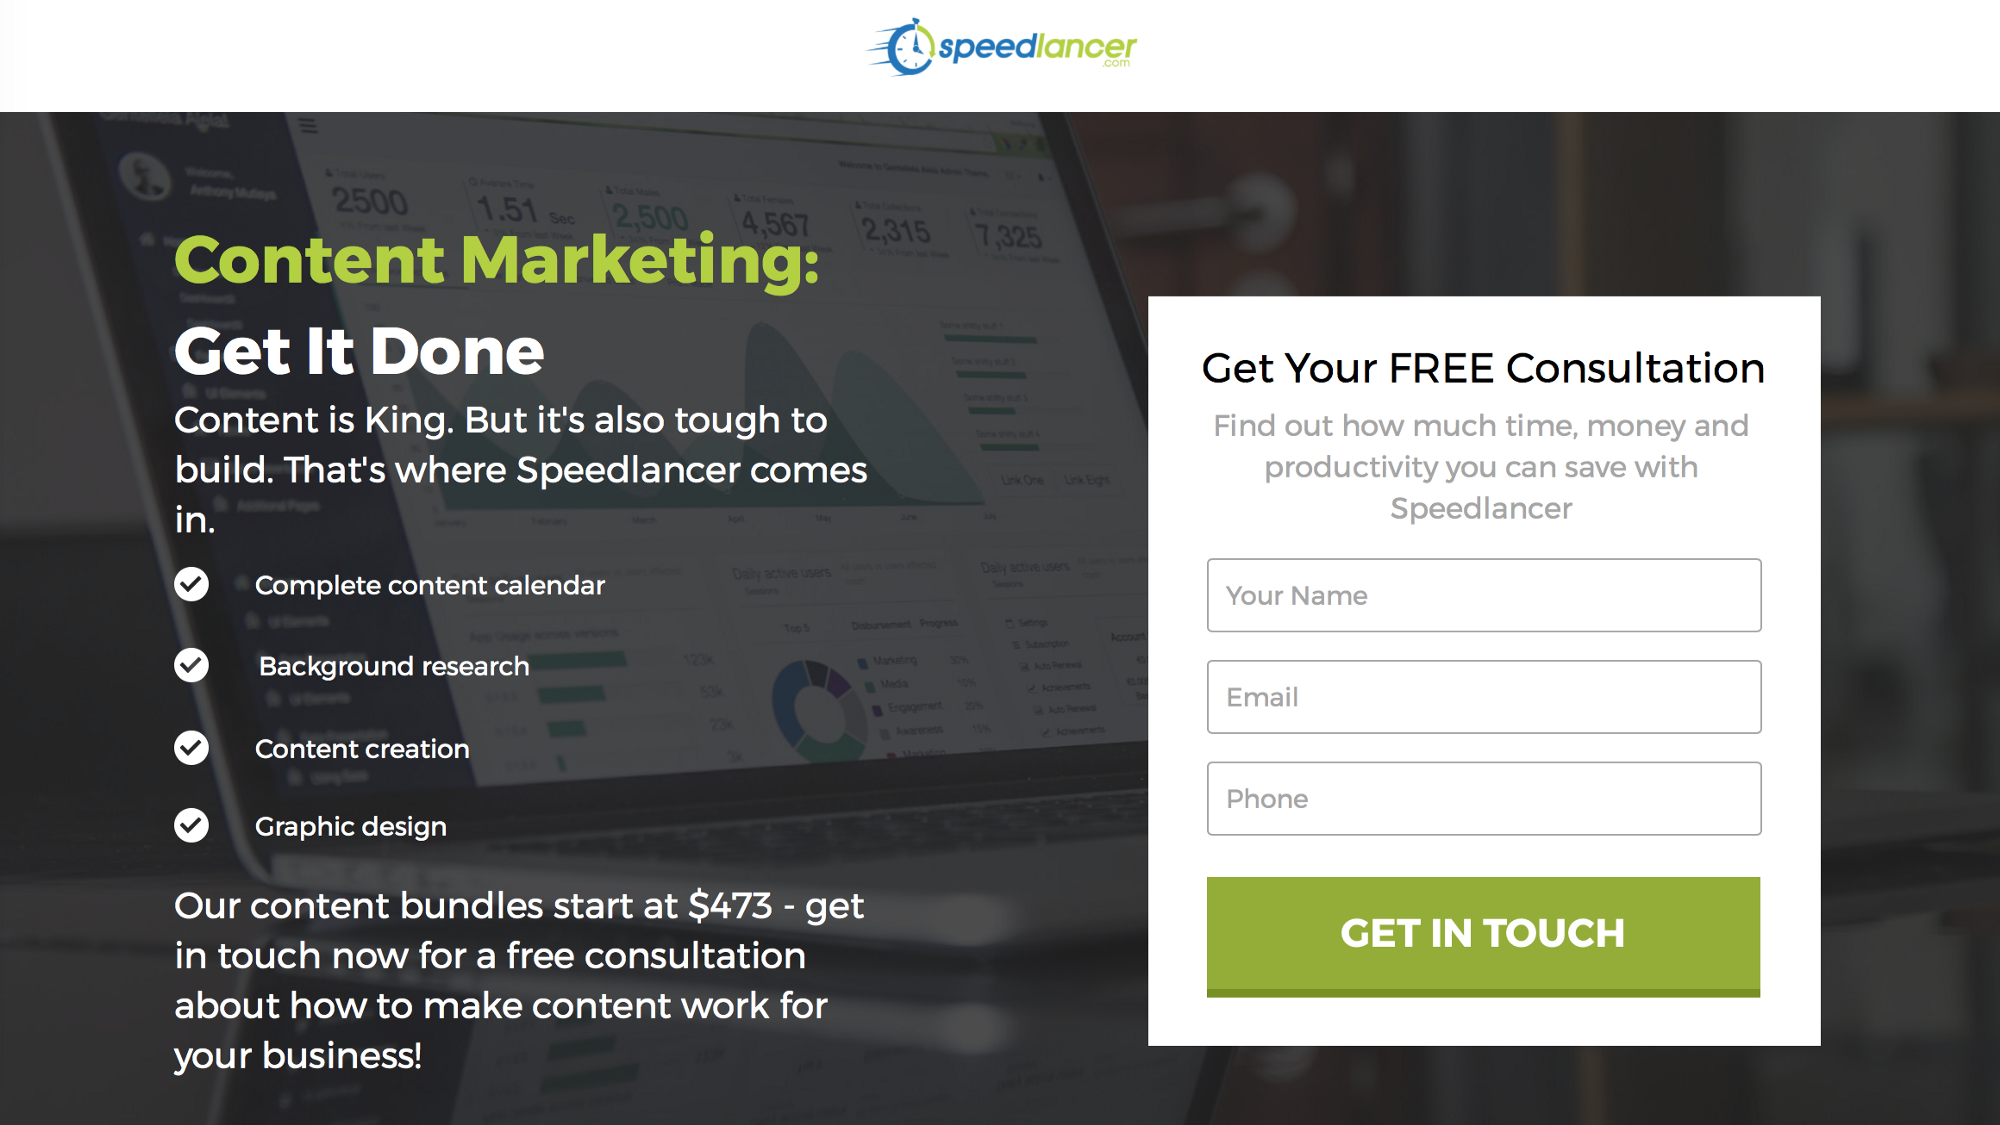 niche-related landing page design on business